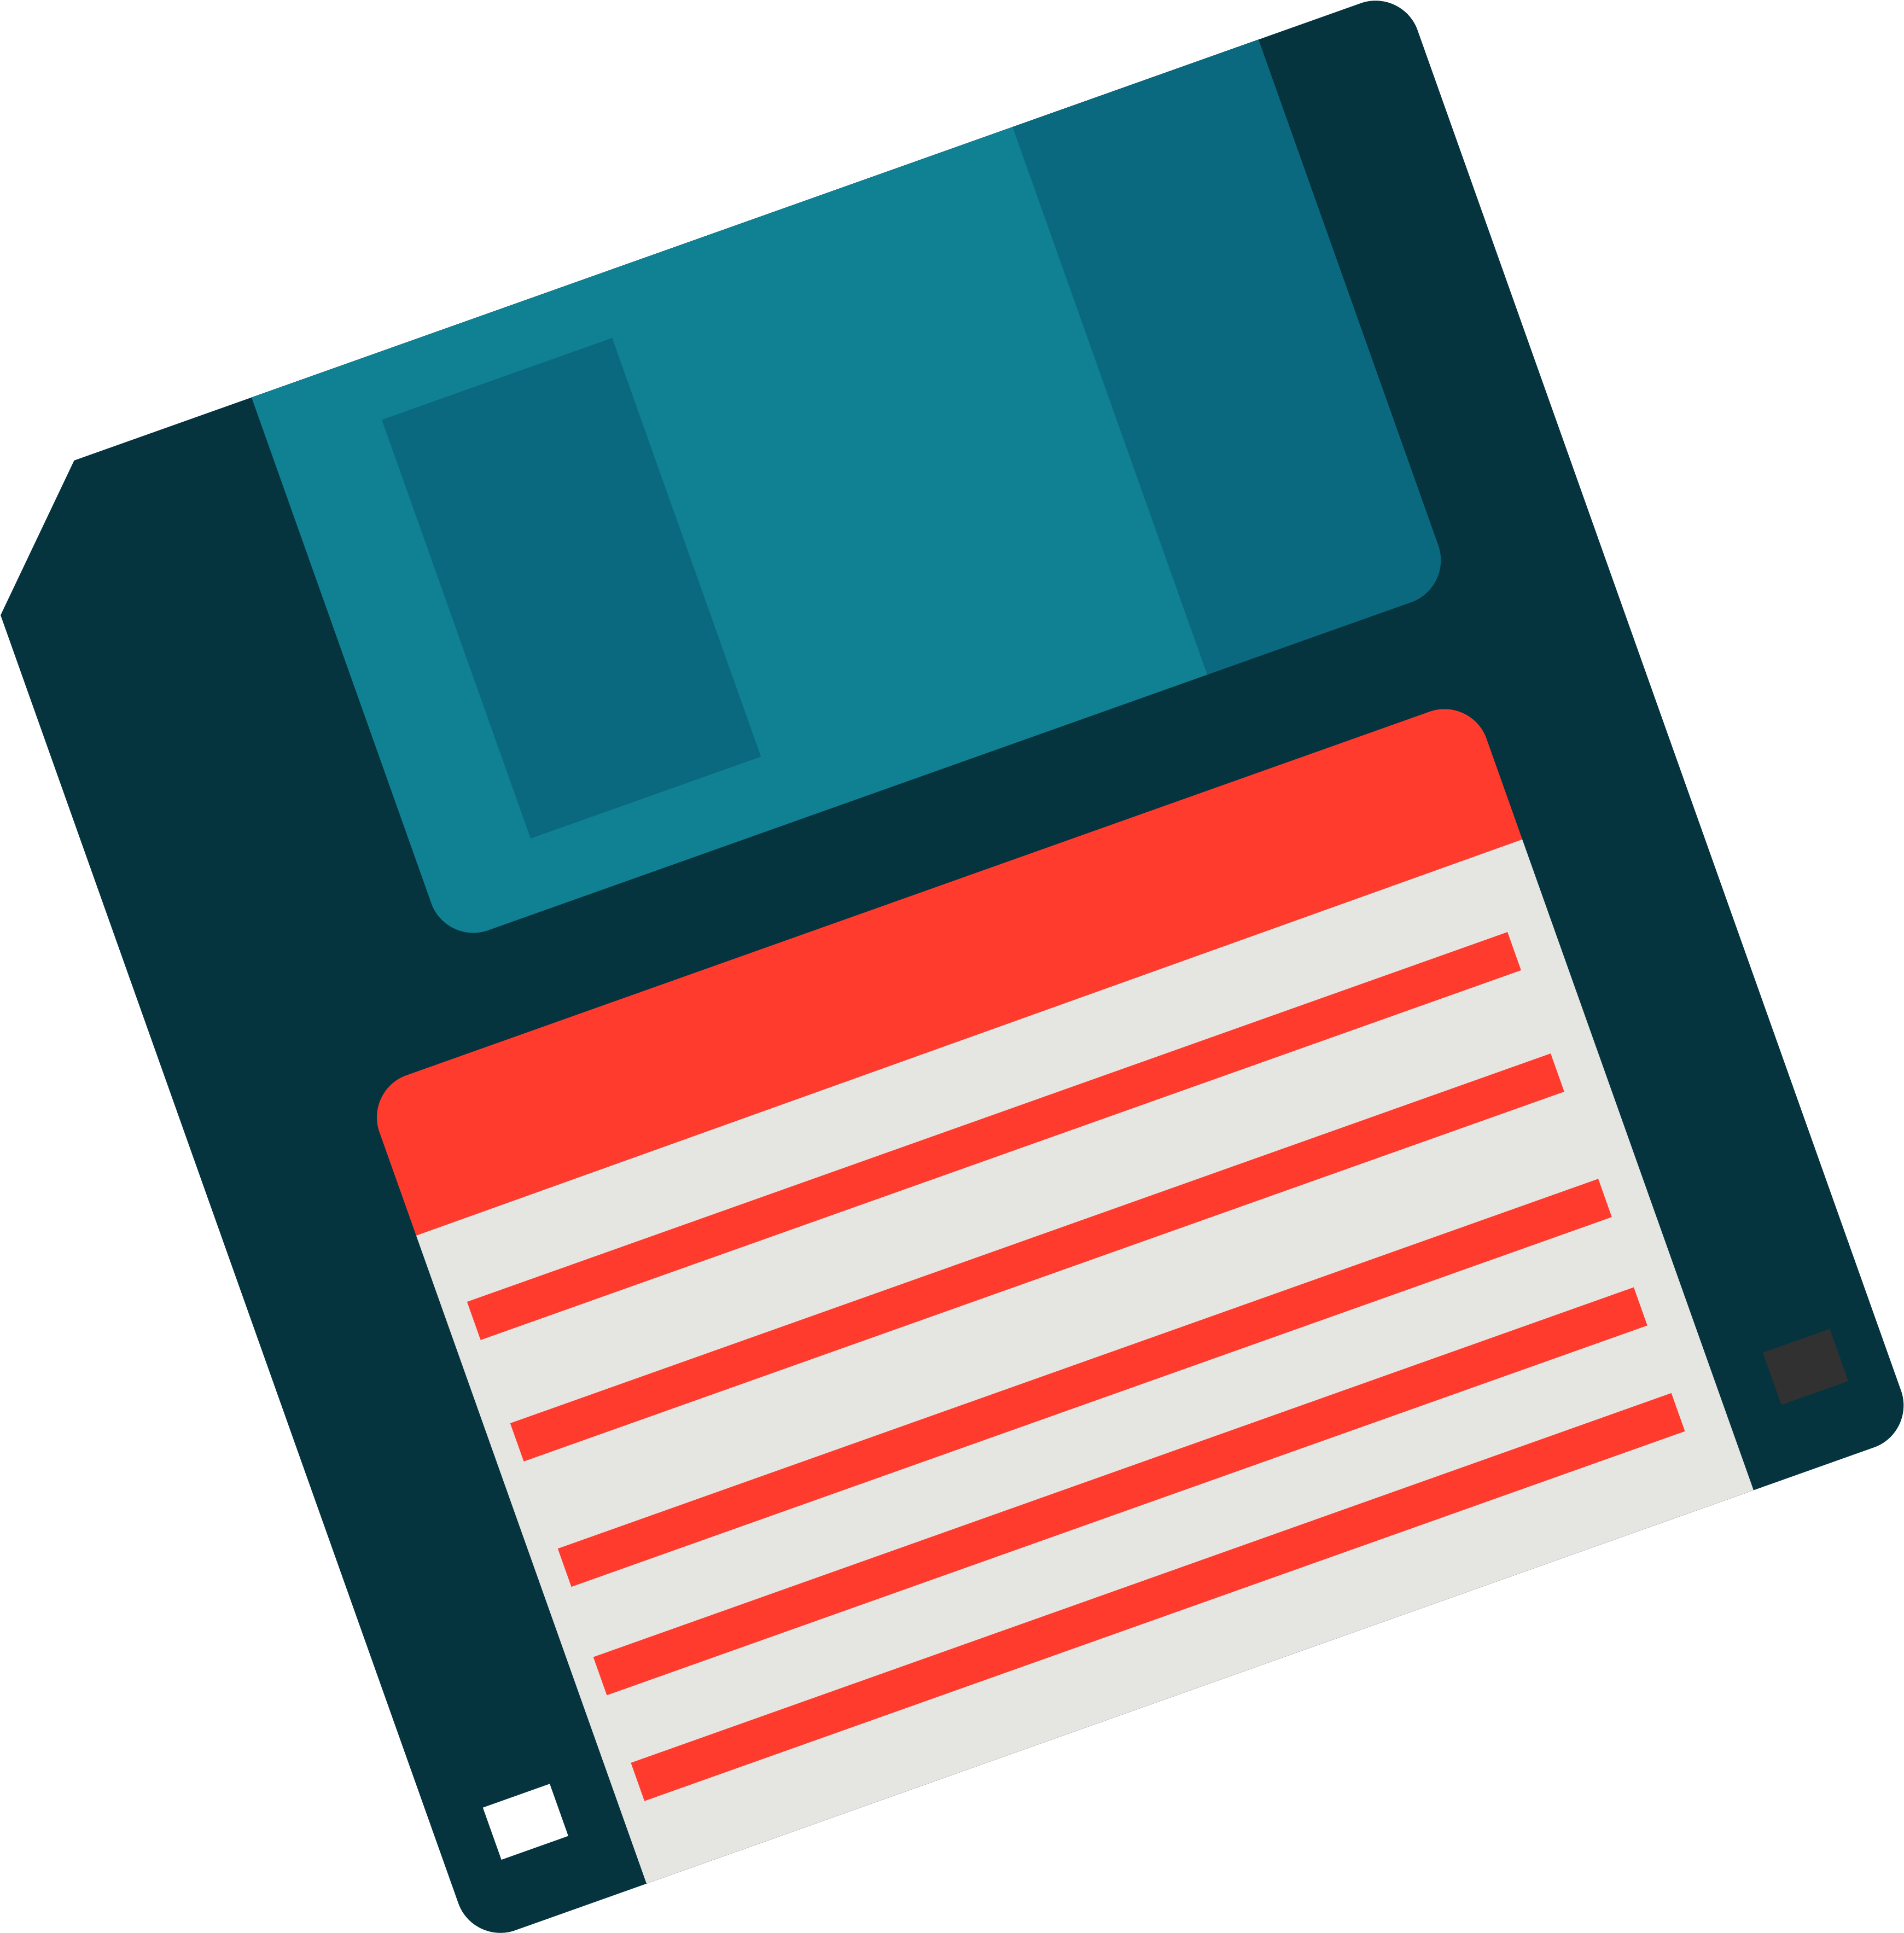 Blue Floppy Disk PNG Transparent Image